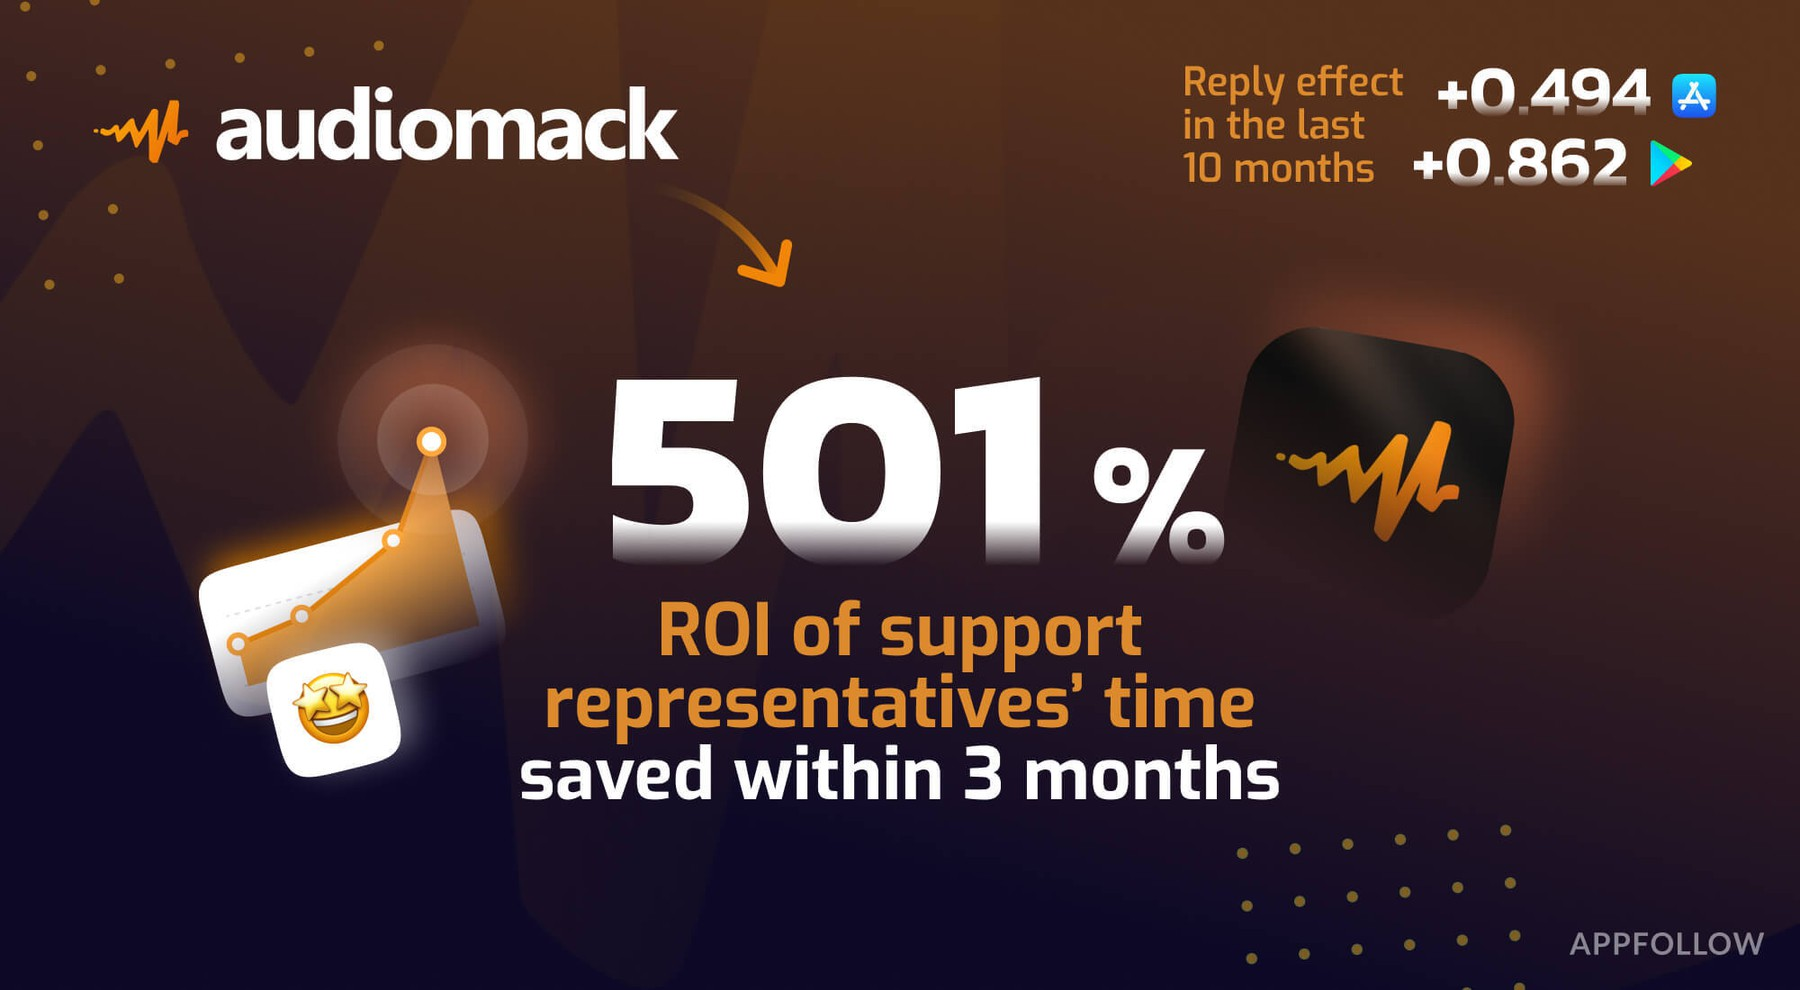 Audiomack leverages automation with AppFollow and gets 501% ROI